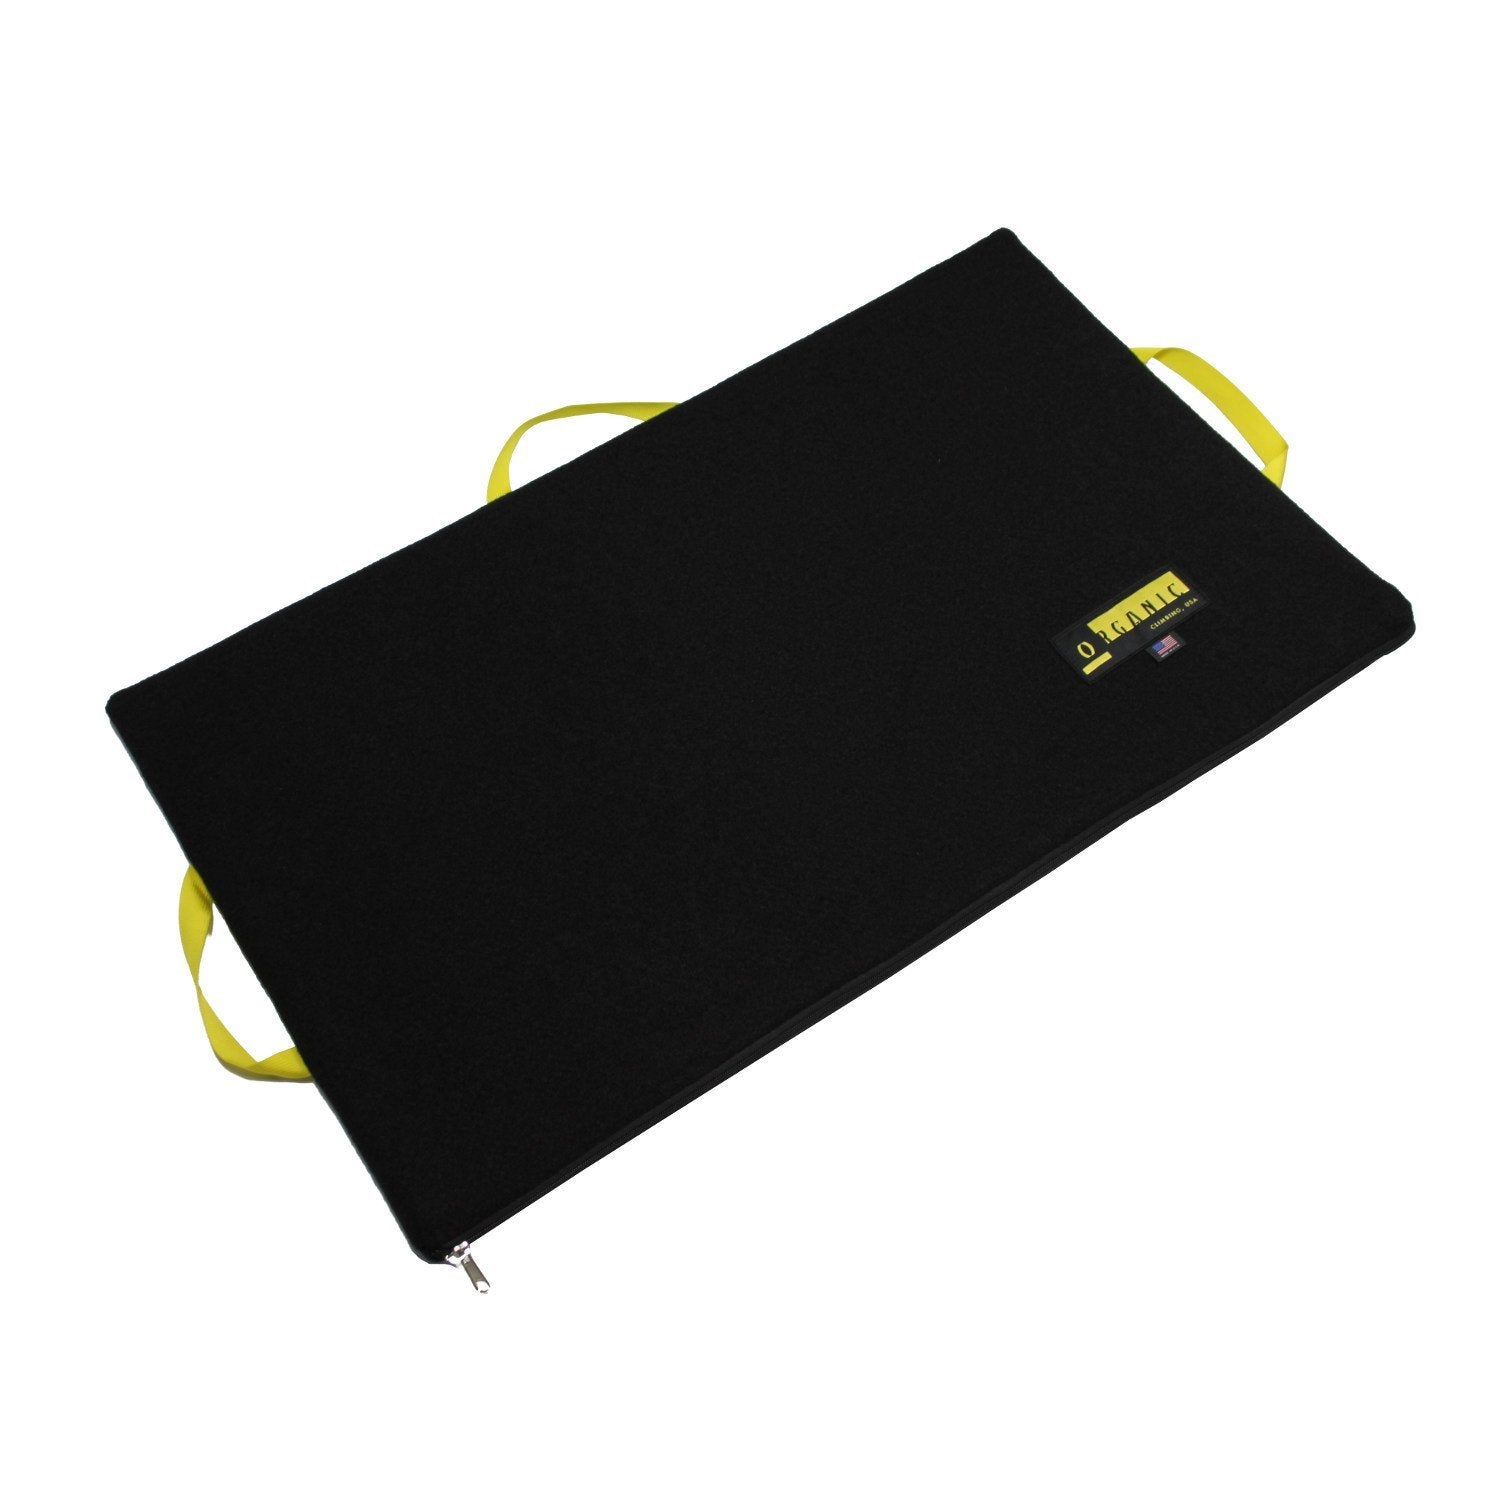 Organic Slider pad, bouldering crash pad shown open laid flat, in black colour